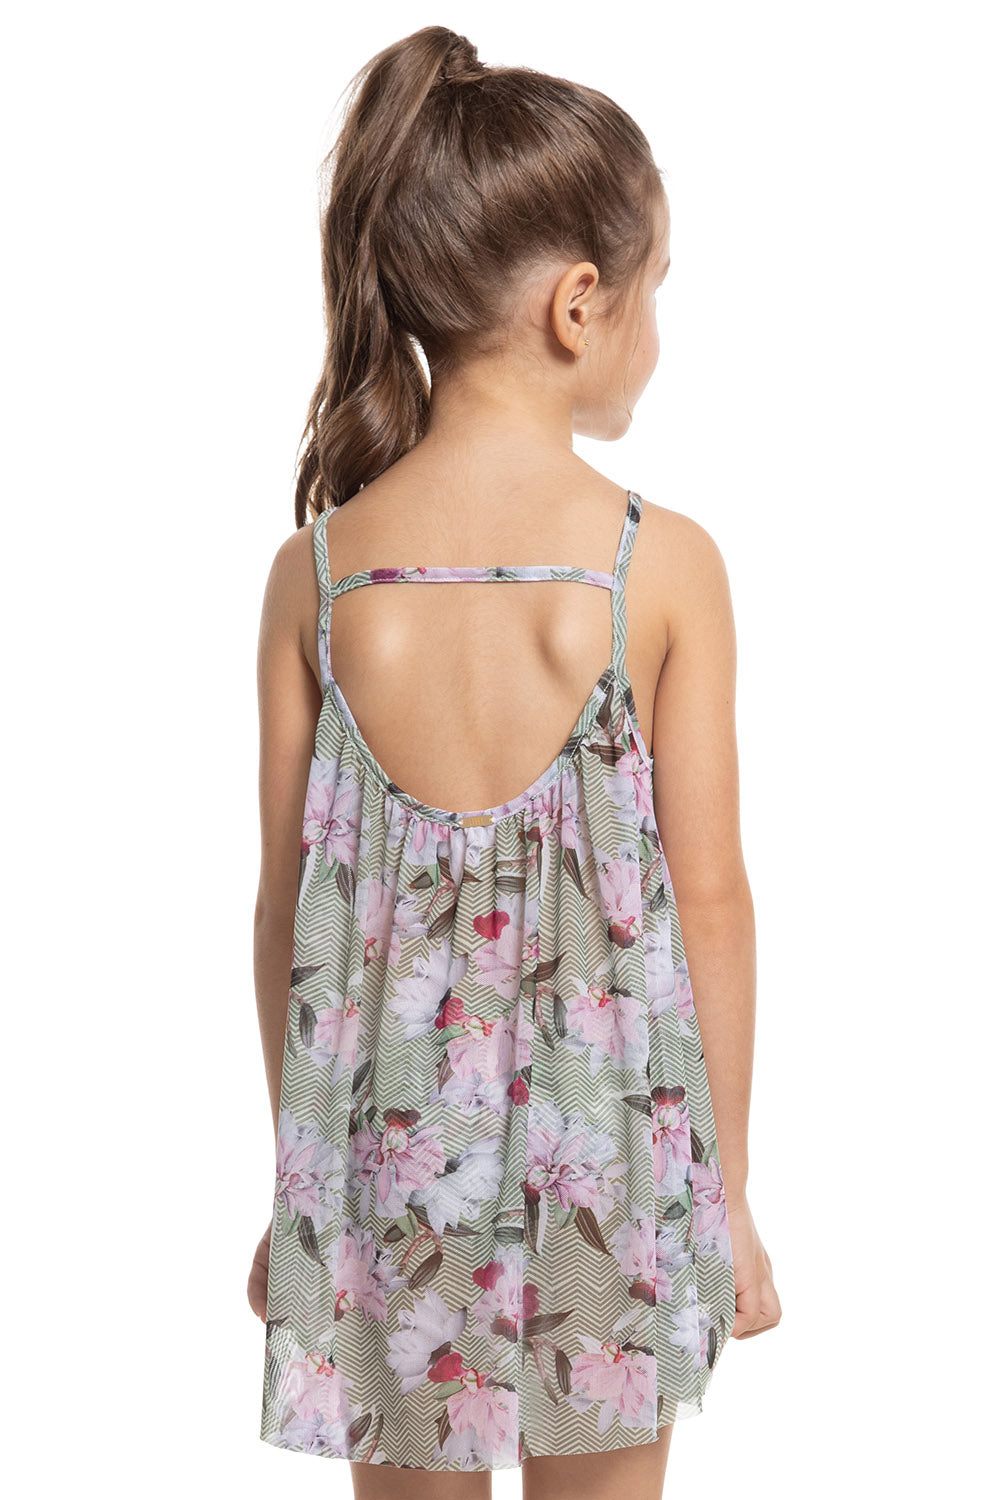 Fun Trendy Kids Dress 2